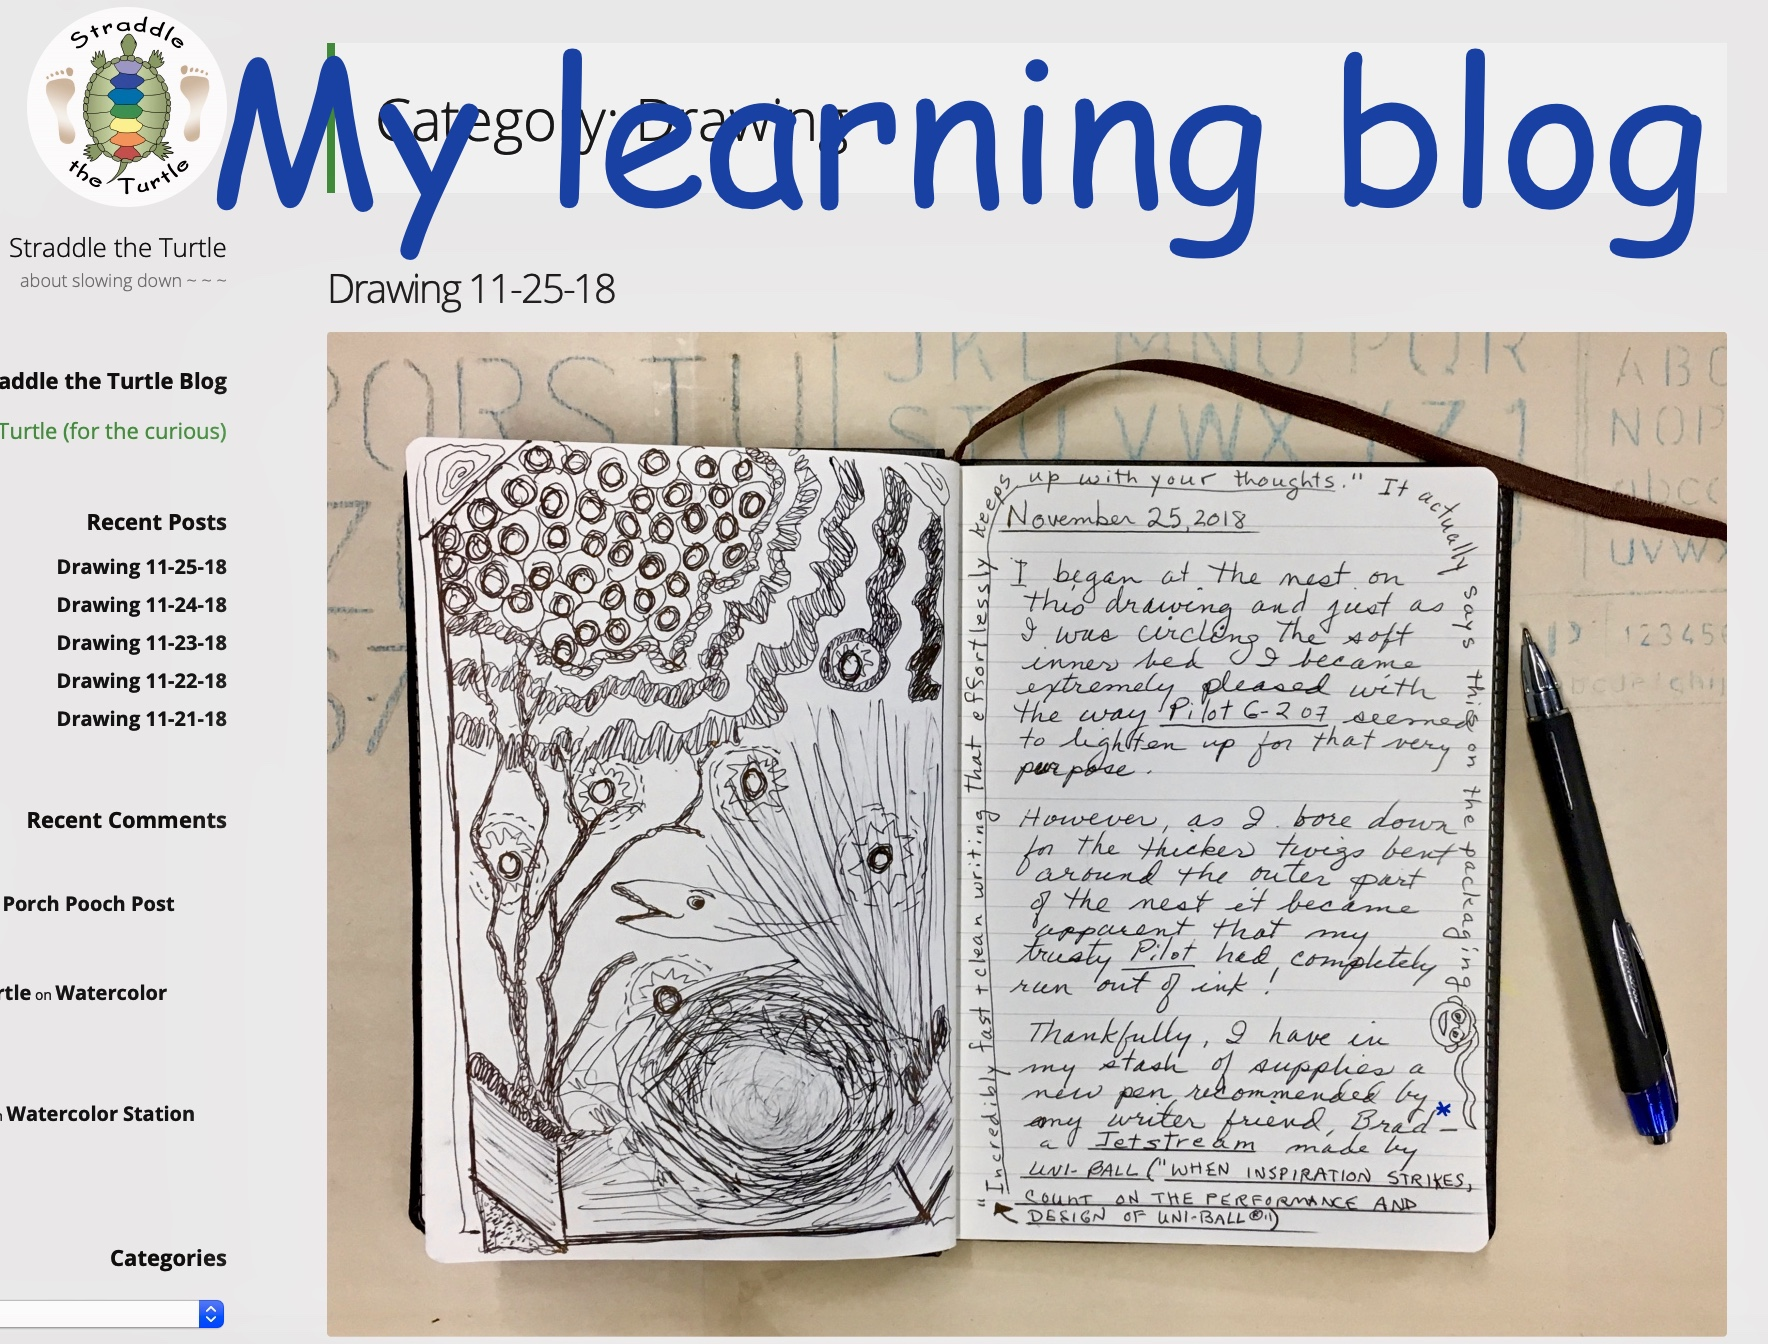 My learning blog